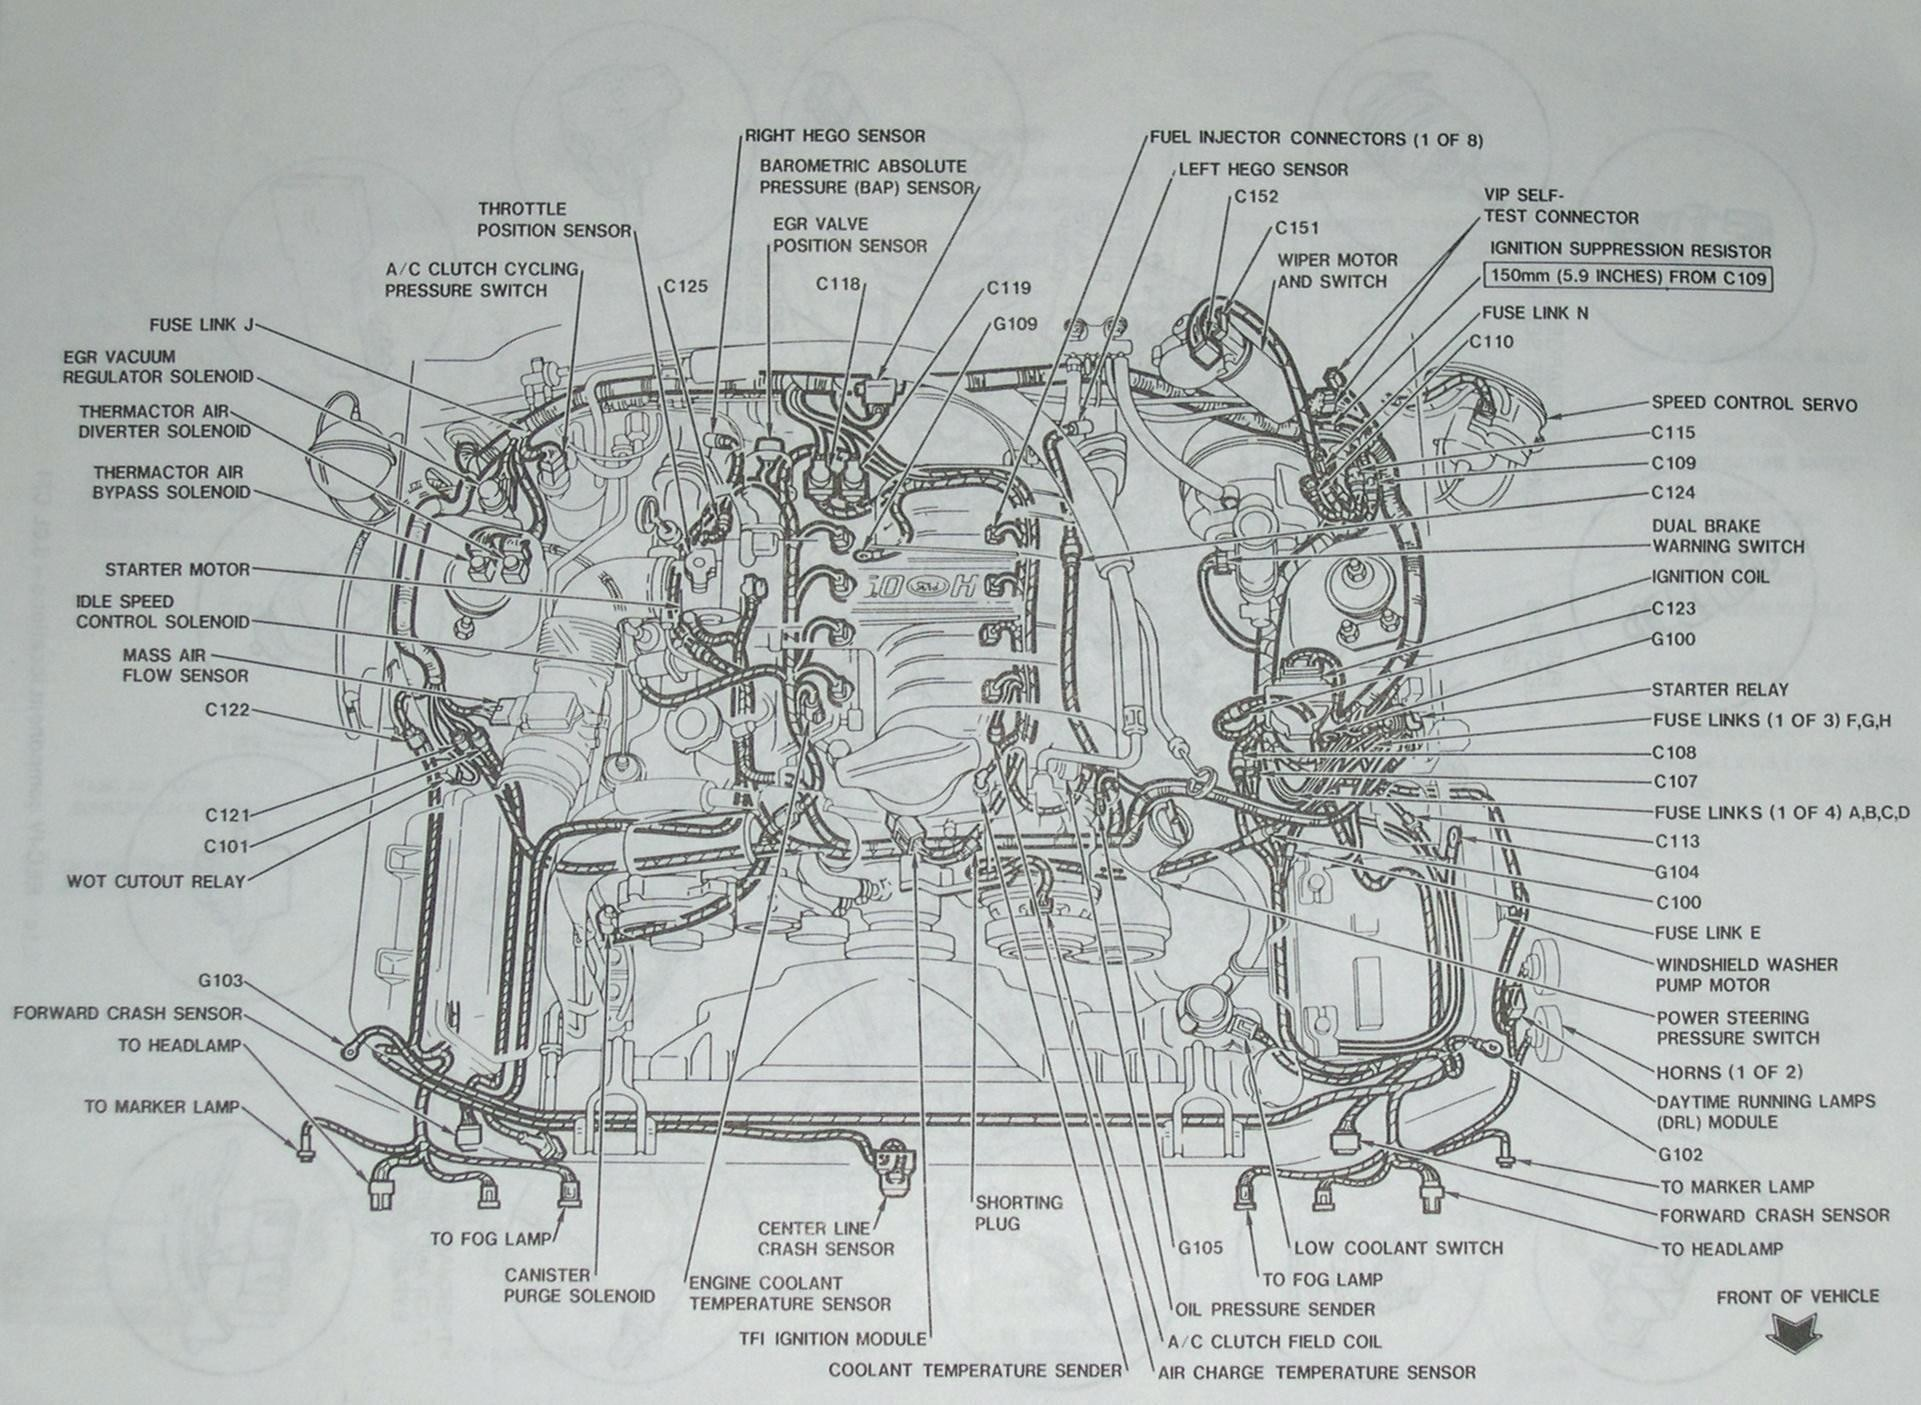 2009 Mustang Engine Diagram